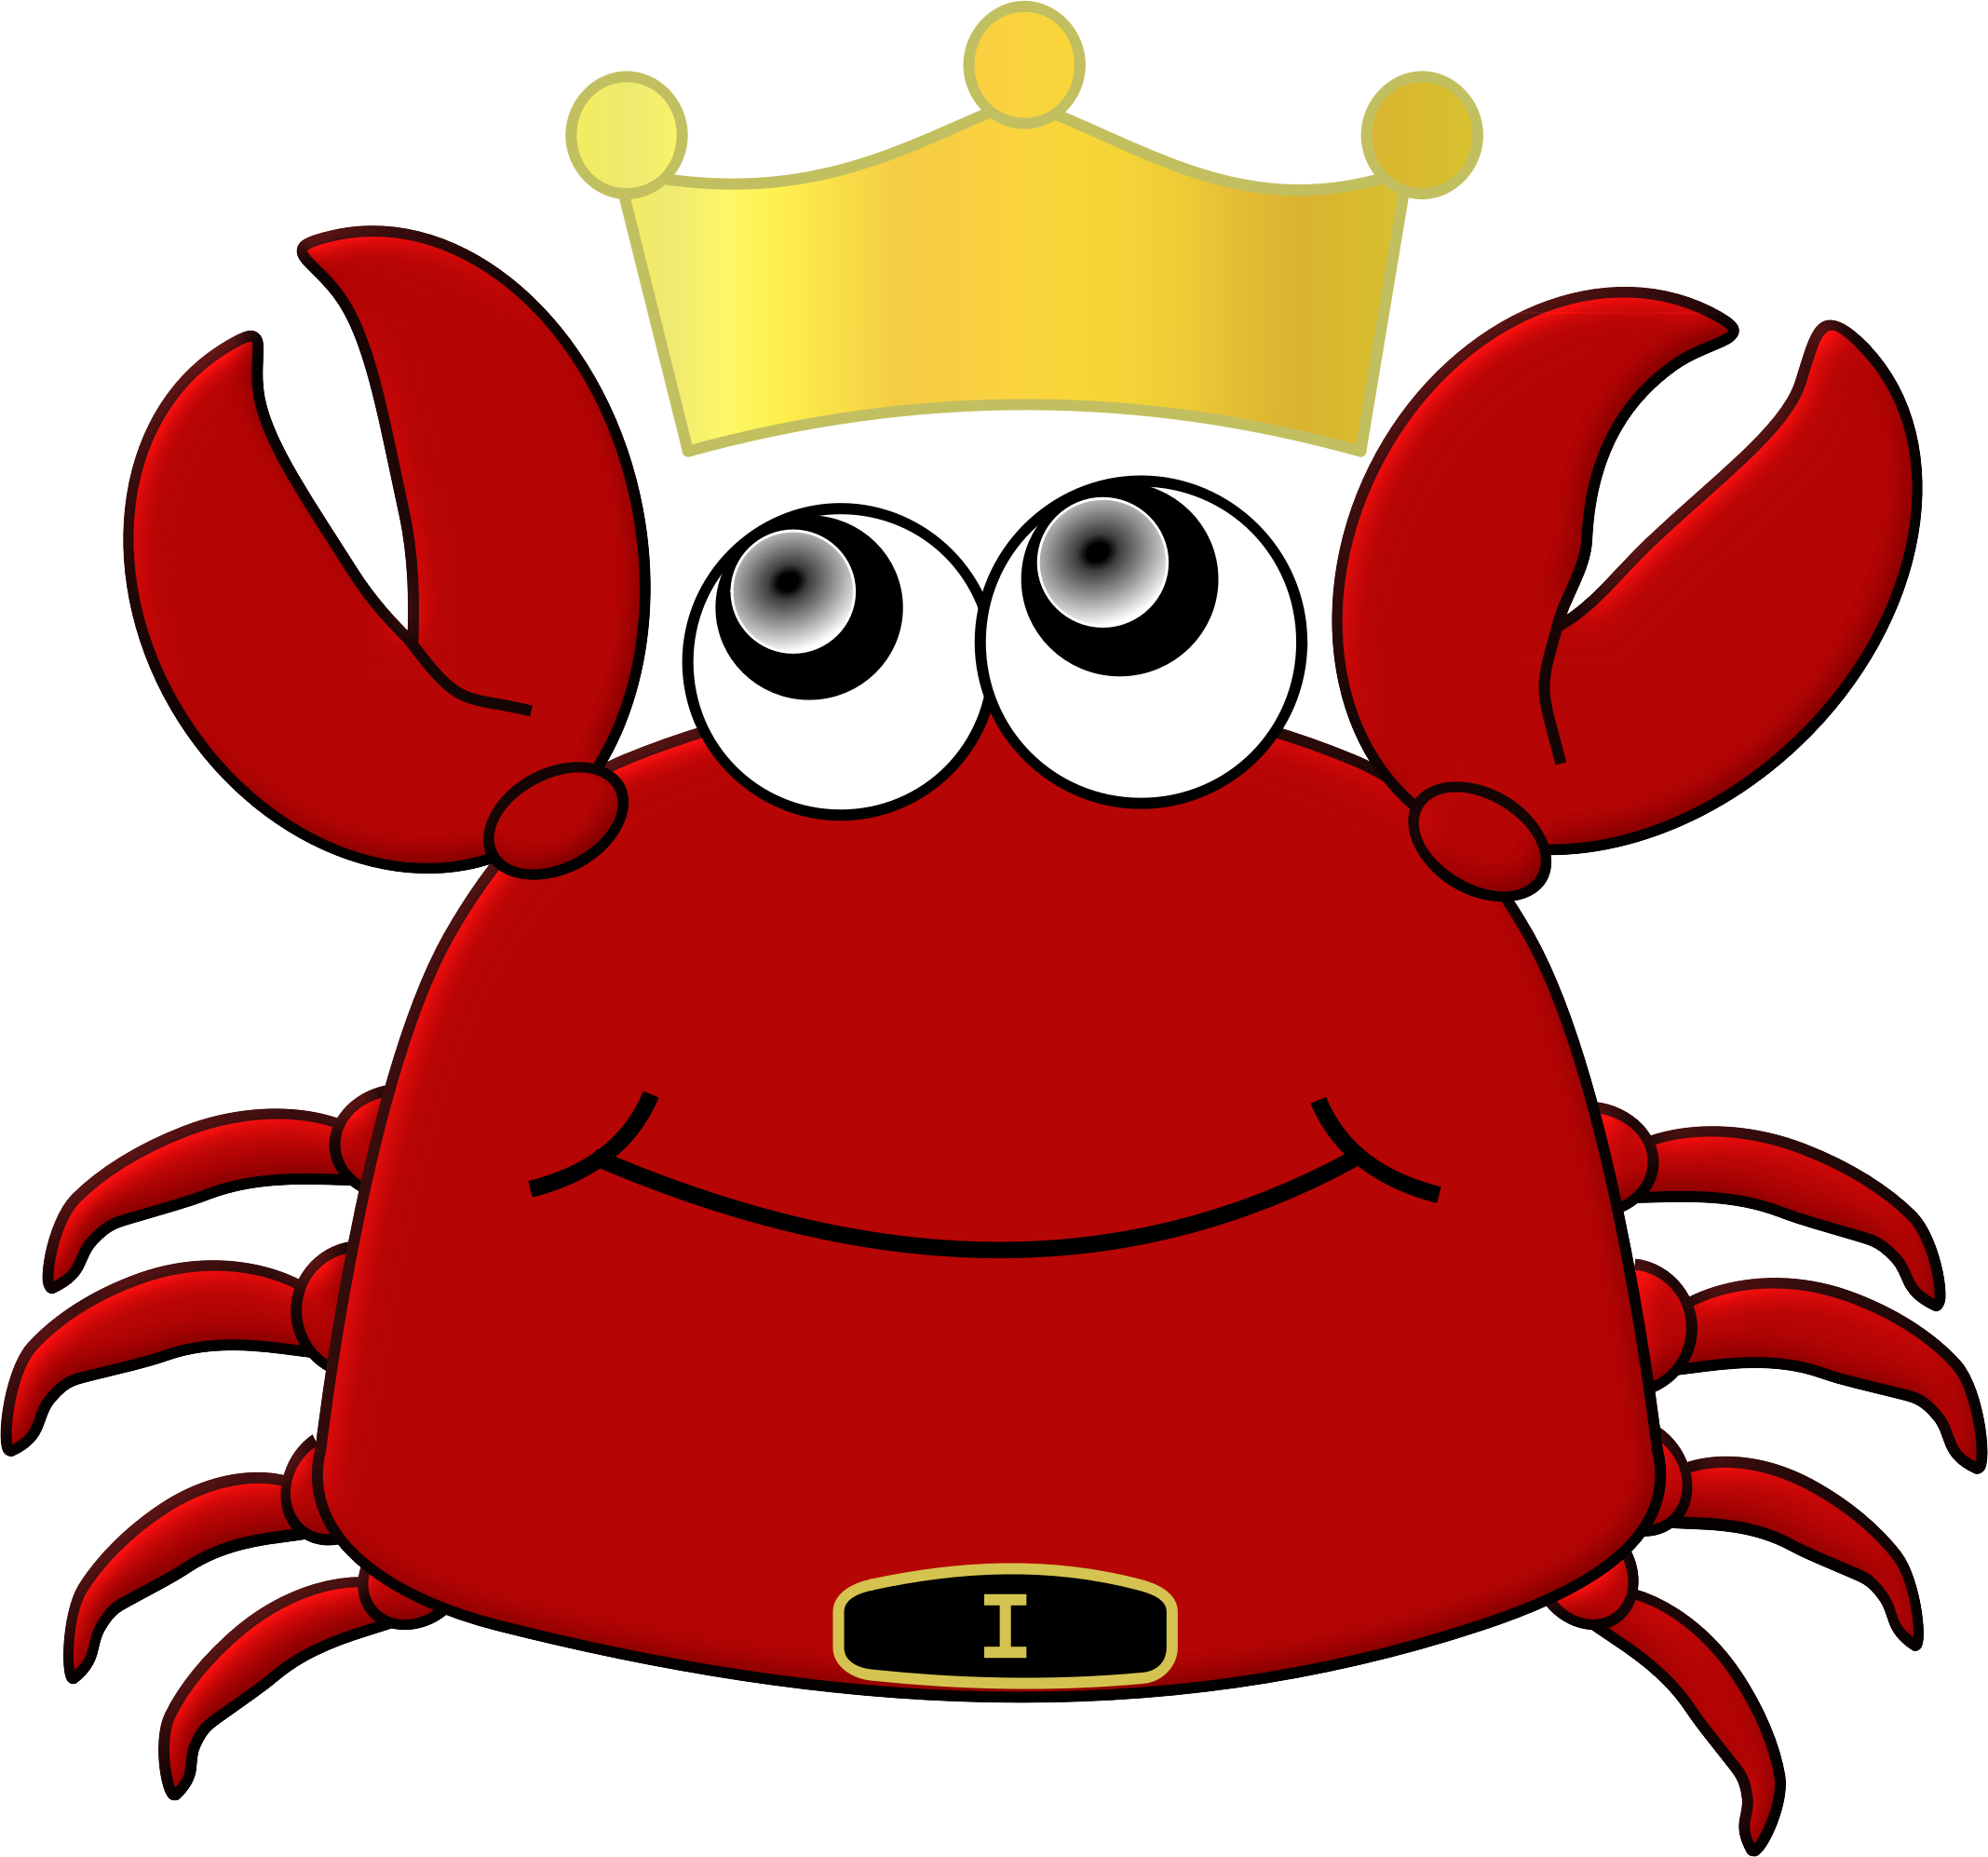 King Crab remix by Arvin61r58